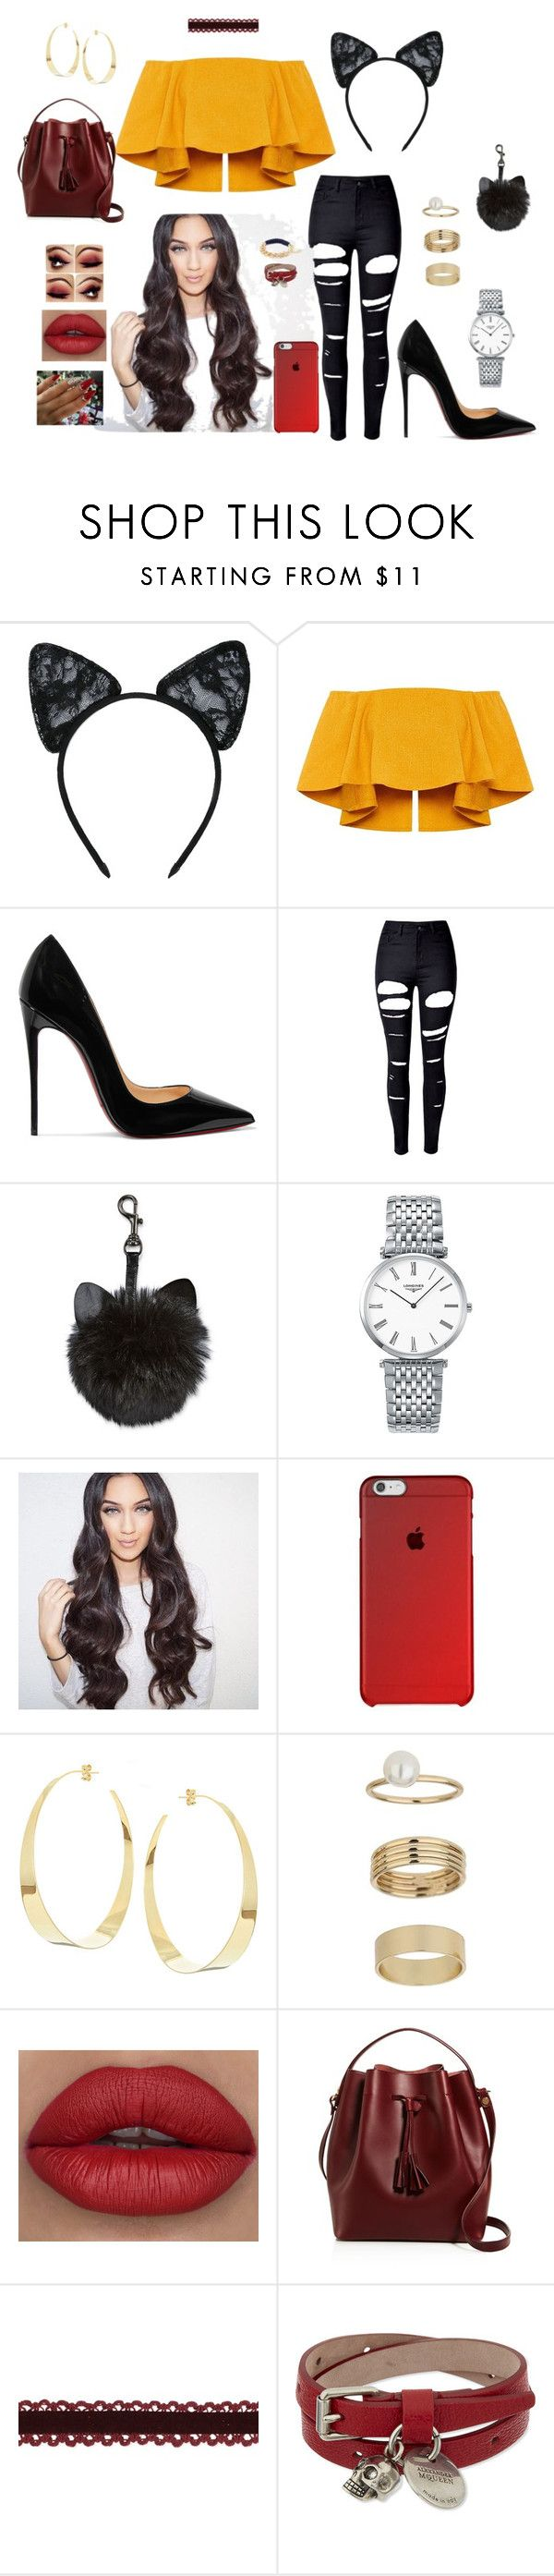 """Fire (inspiraction)"" by anaritaferreira on Polyvore featuring moda, Maison Close, Christian Louboutin, WithChic, Longines, Lana, Miss Selfridge, Céline Lefébure e Alexander McQueen"